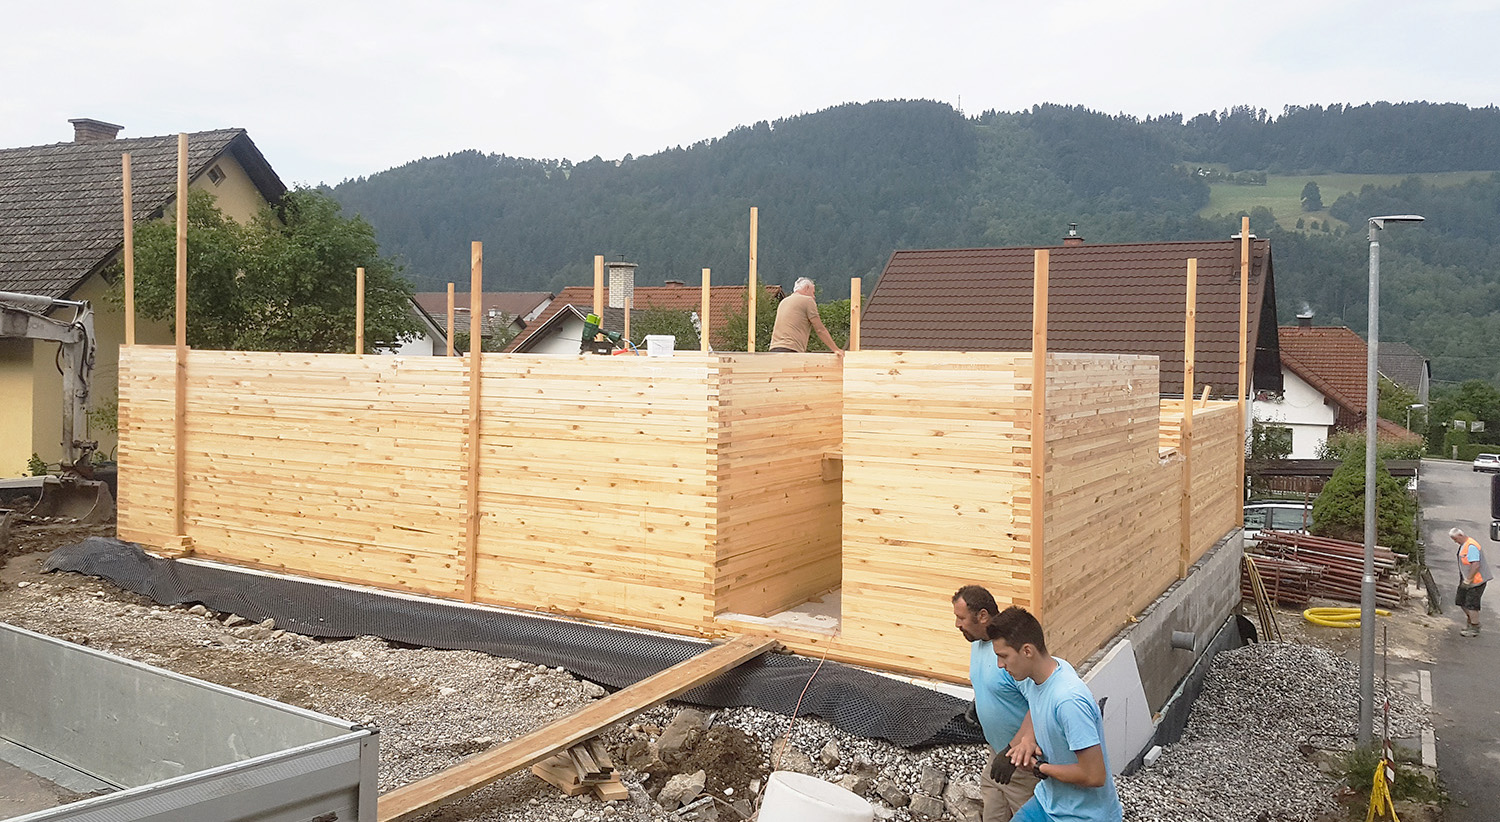 Innovative method of wooden construction - horizontally laminated wood, made on site